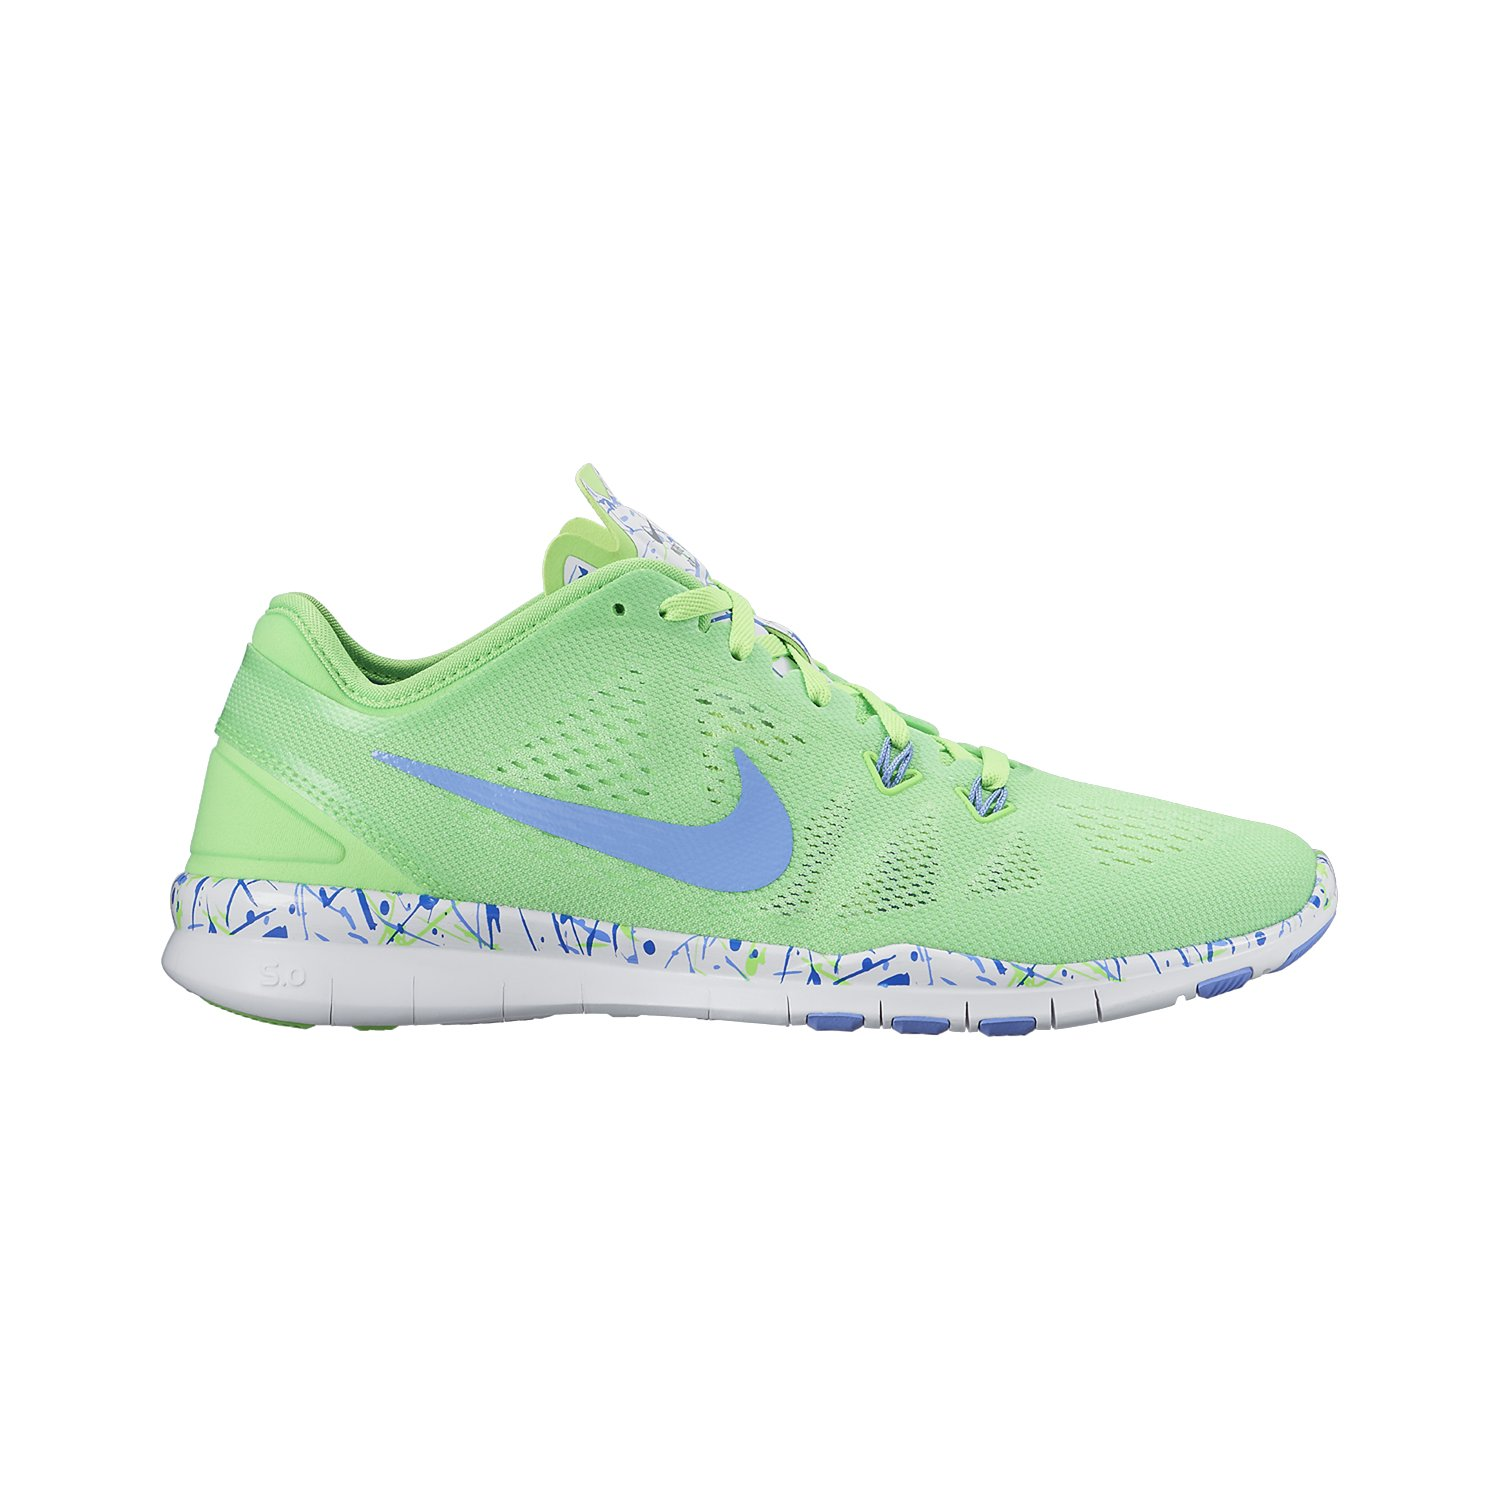 a99a92a4cf02df Galleon - NIKE Womens Free 5.0 TR FIT PRT Running Shoes Voltage Green White Chalk  Blue 704695-301 Size 6